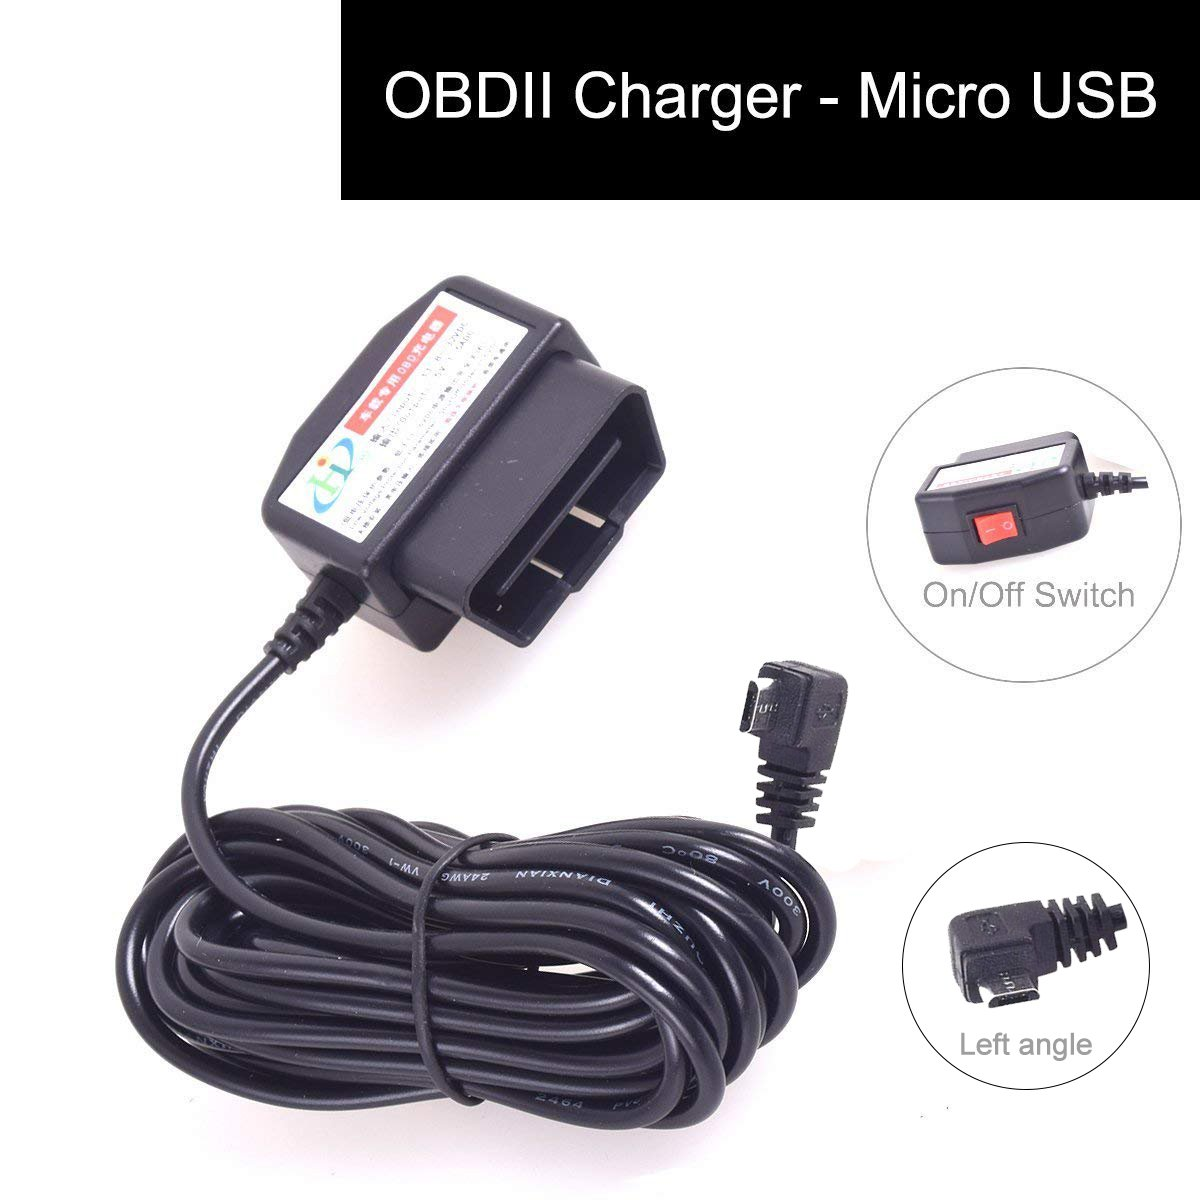 Car Obd2 Dash Camera Dvr Charging Cable Micro Usb Power To Wiring Diagram Adapter With Switch Button 16pin Connector Direct Charger For Gps Camcorder